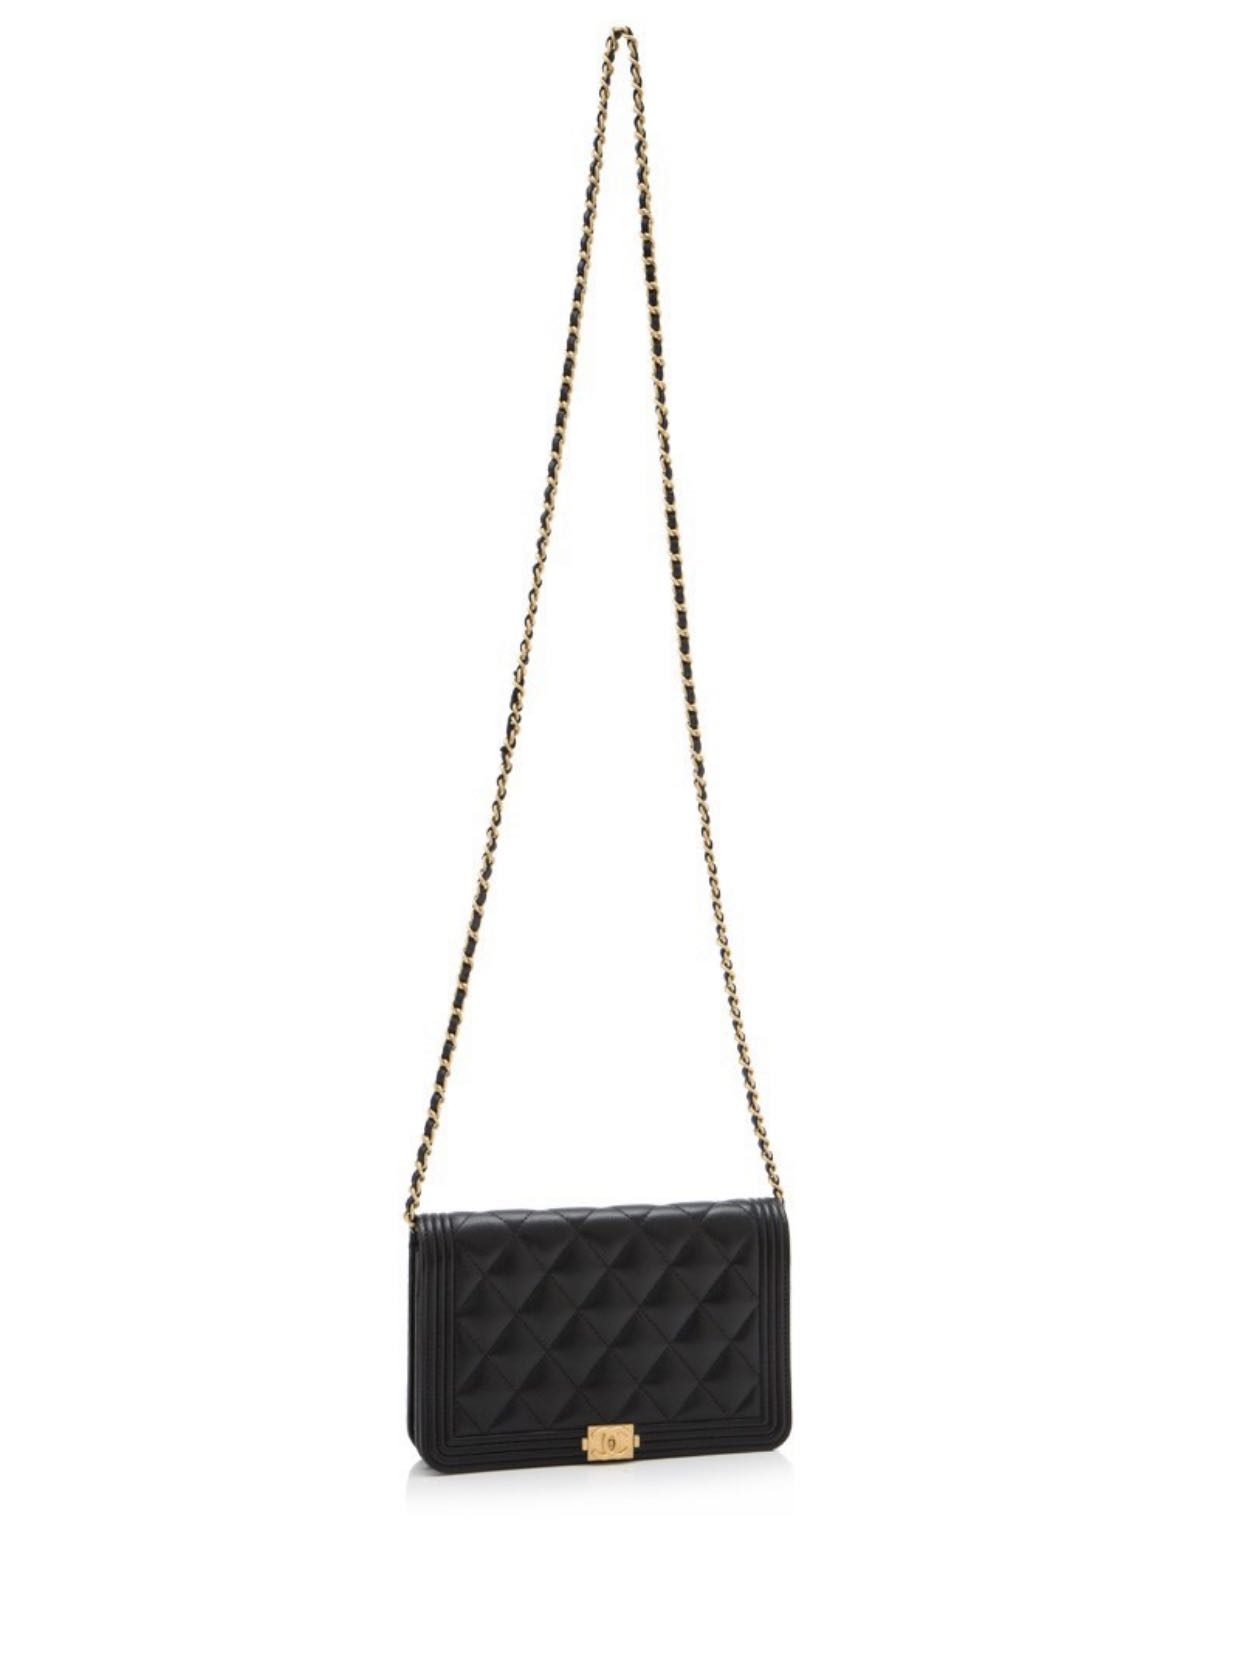 1247a57417d4 New chanel boy wallet on chain, Luxury, Bags & Wallets, Sling Bags ...